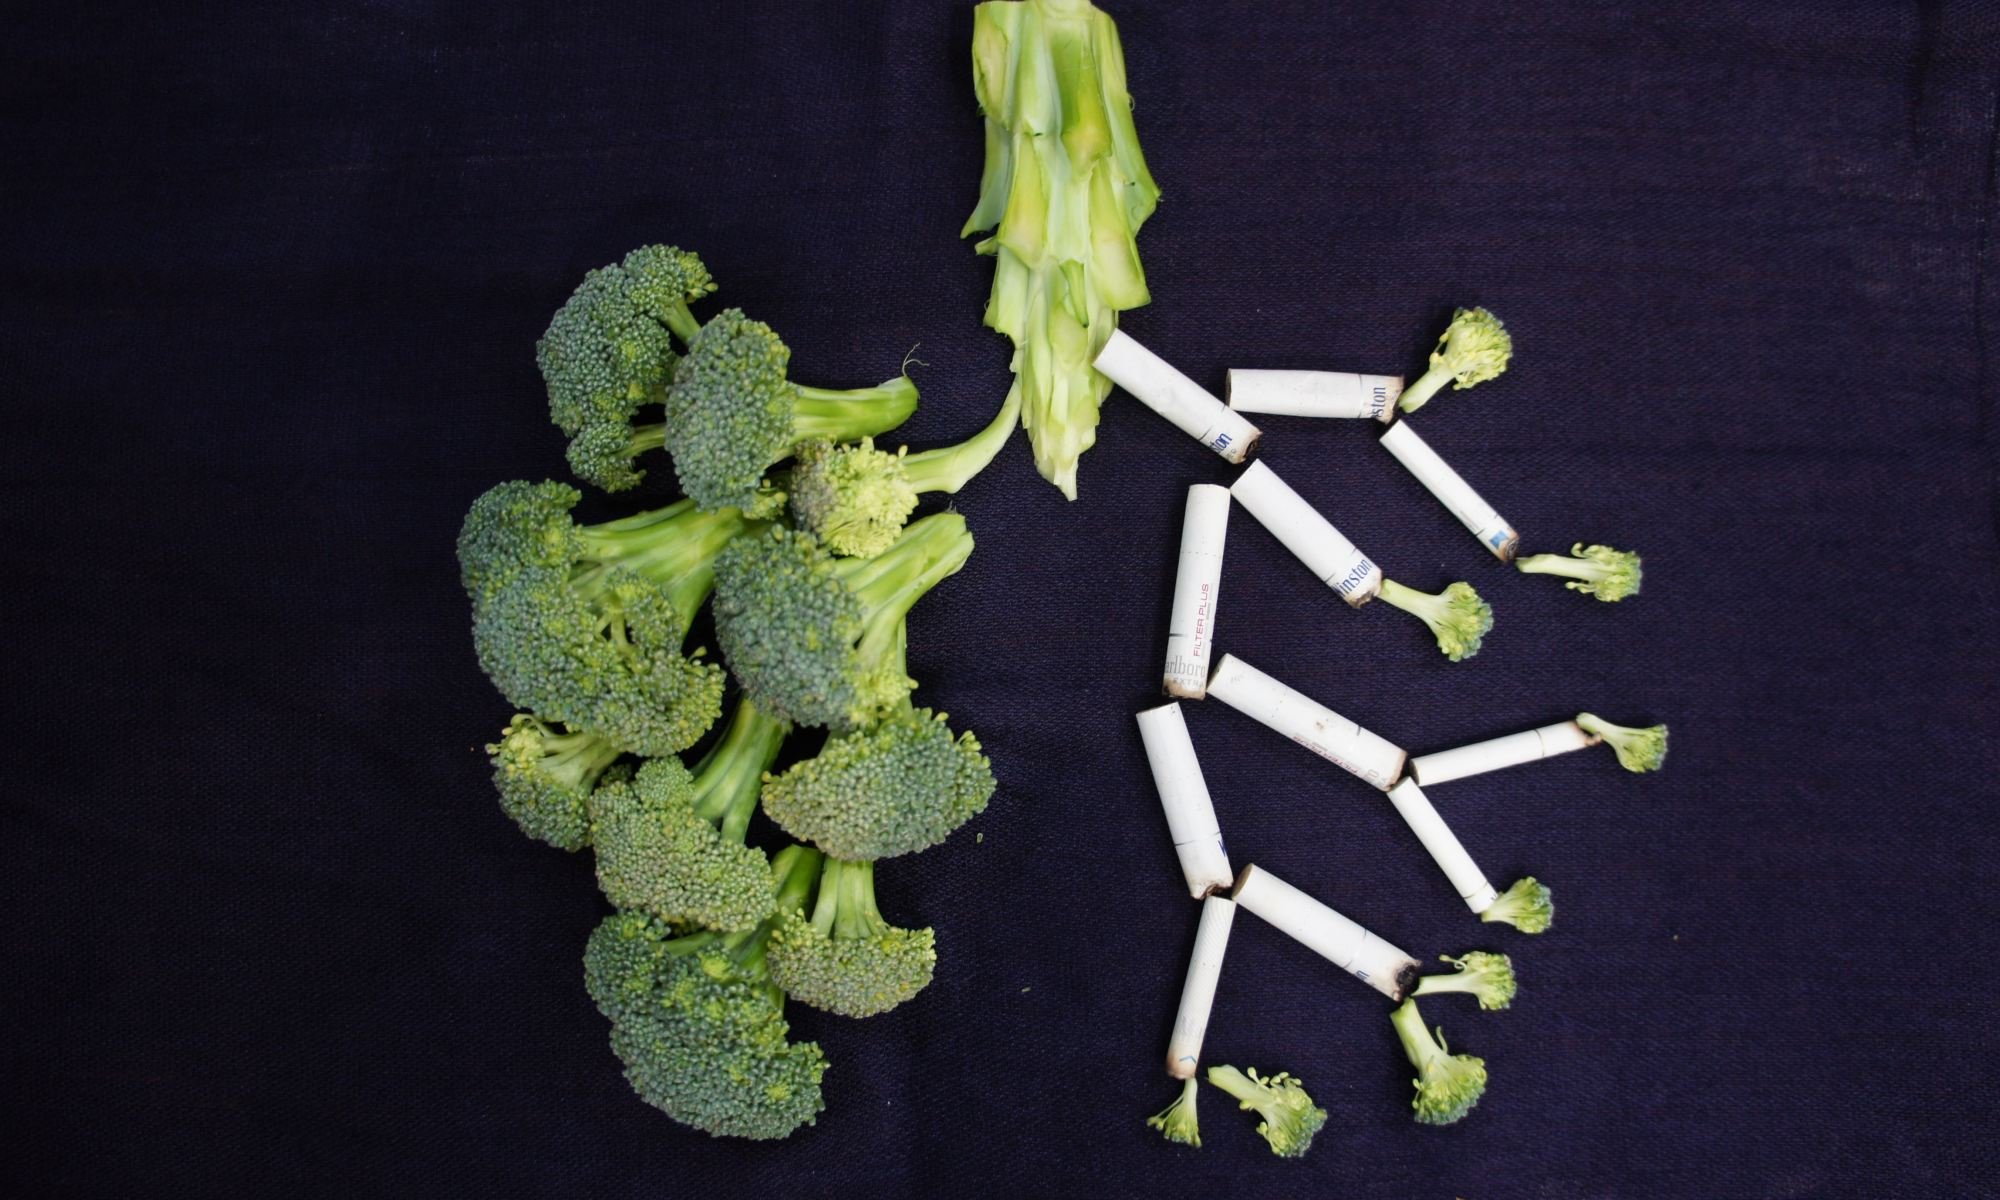 Green broccoli and cigarettes arranged in the shape of lungs